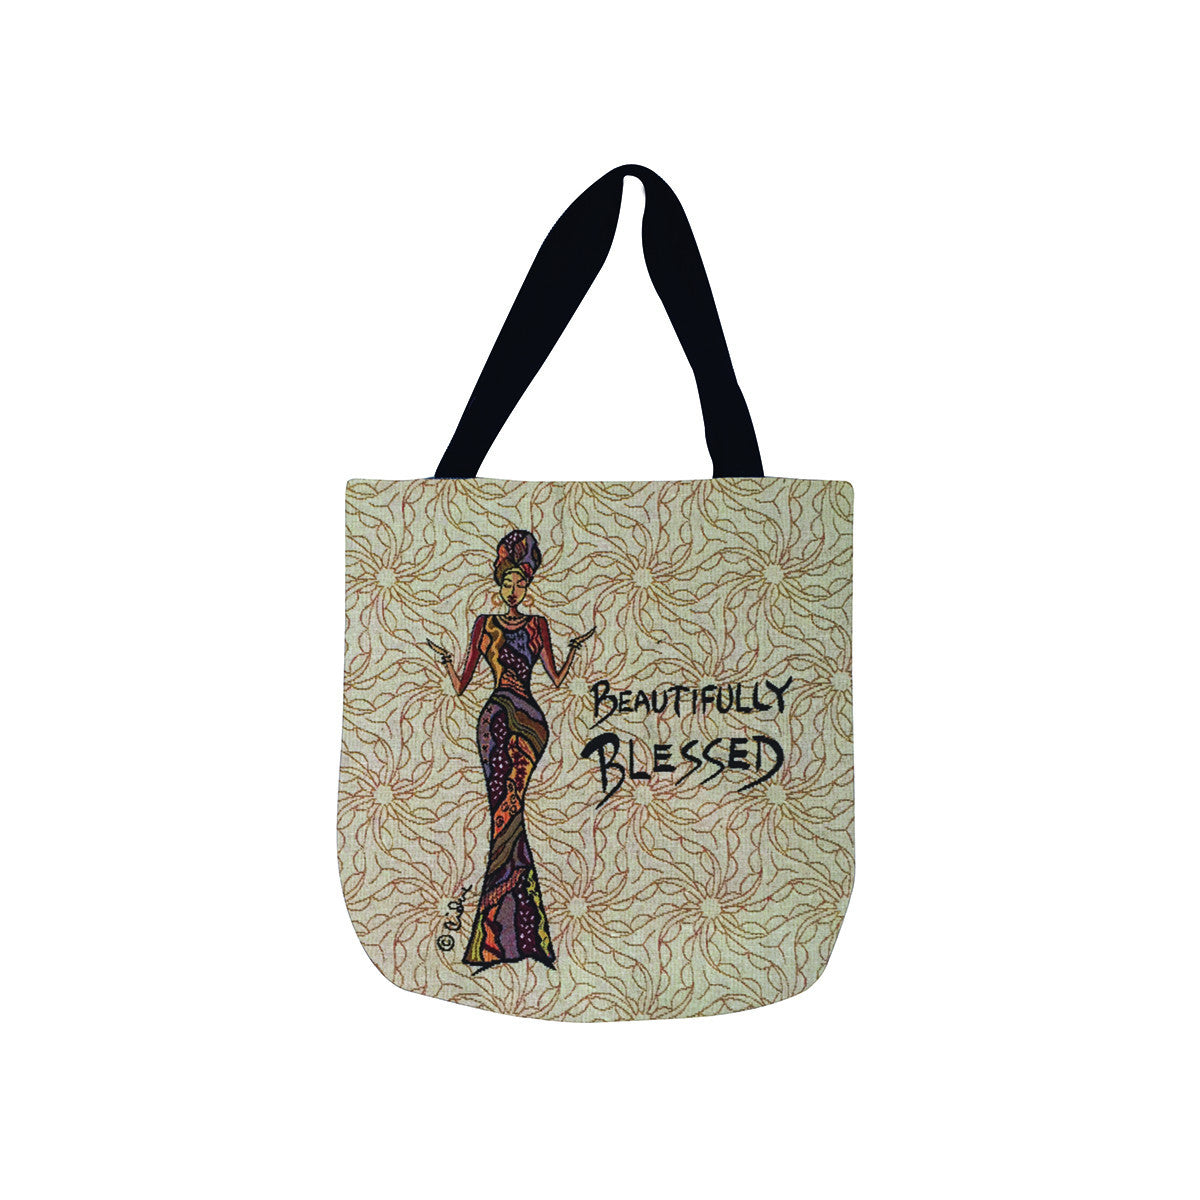 Beautifully Blessed: Cidne Wallace Tote Bag by Shades of Color